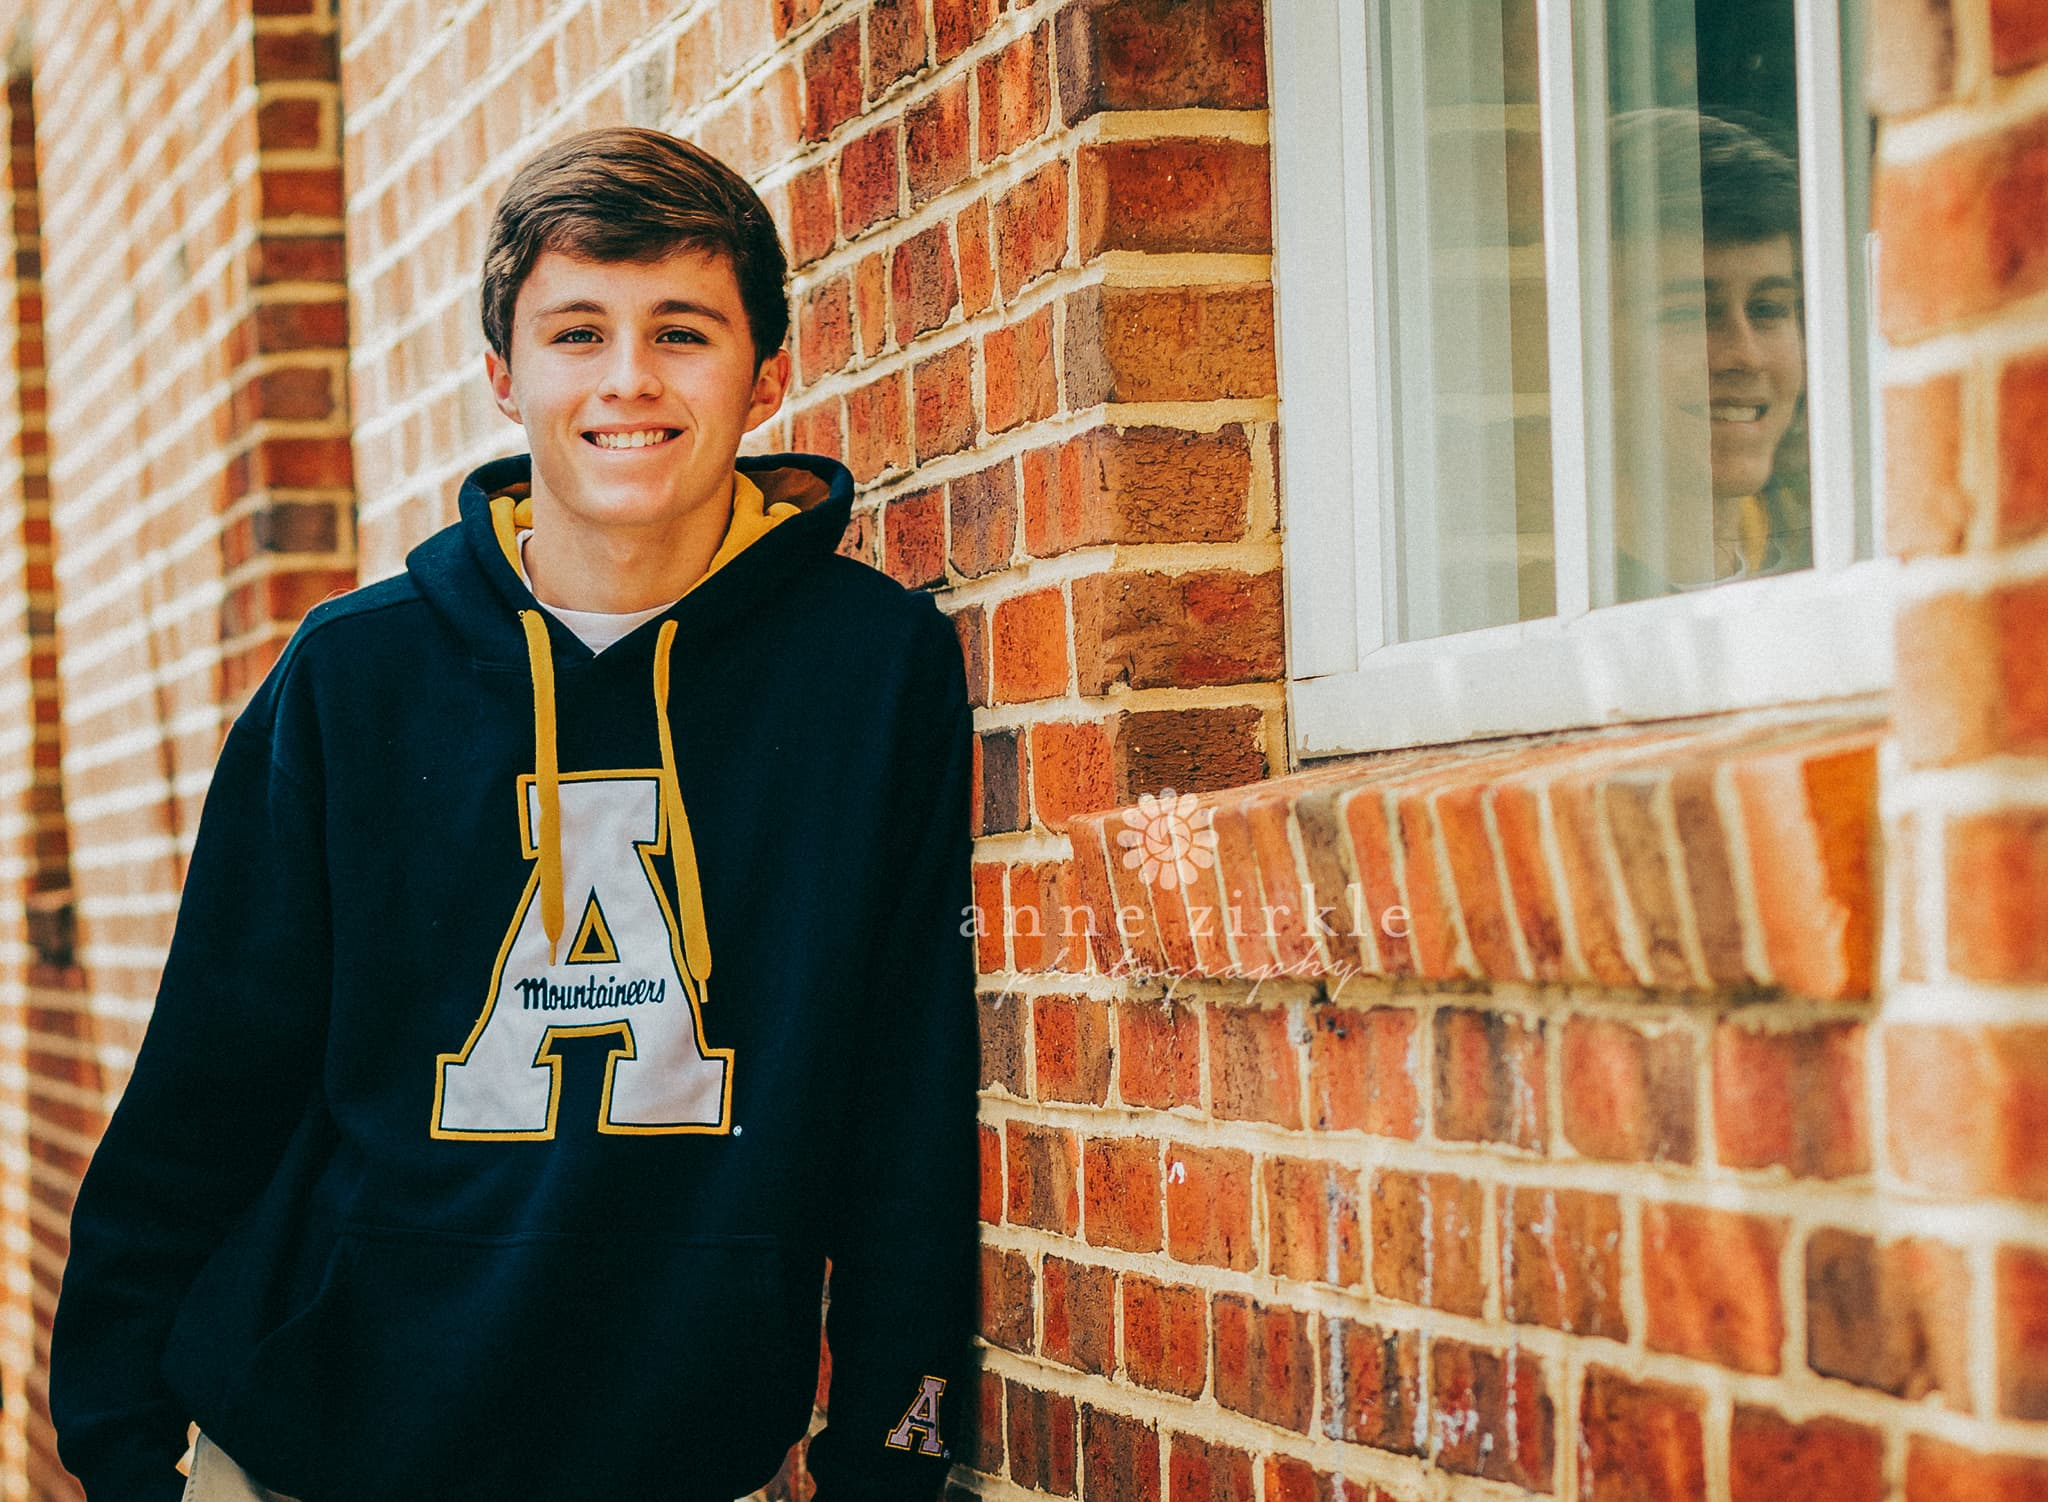 senior boy standing by brick wall #mooresville #northcarolina #davidson #lakenorman #southiredell #pinelakeprep #highschool #highschoolsenior #highschoolseniors #seniors